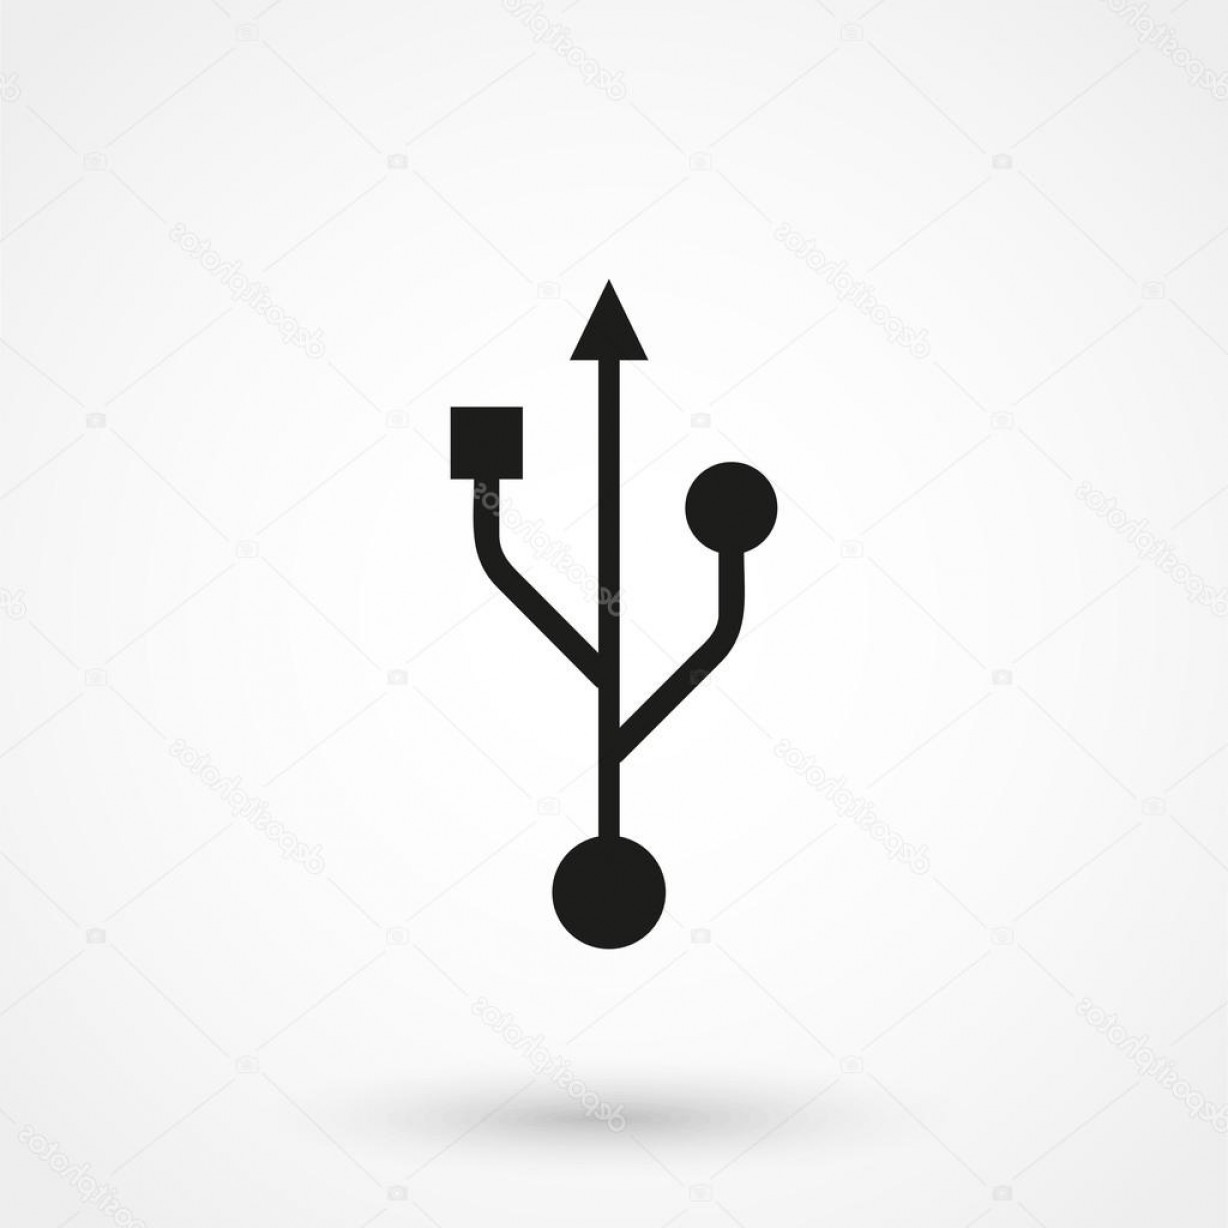 USB Icon Vector: Stock Illustration Usb Icon Vector Black On